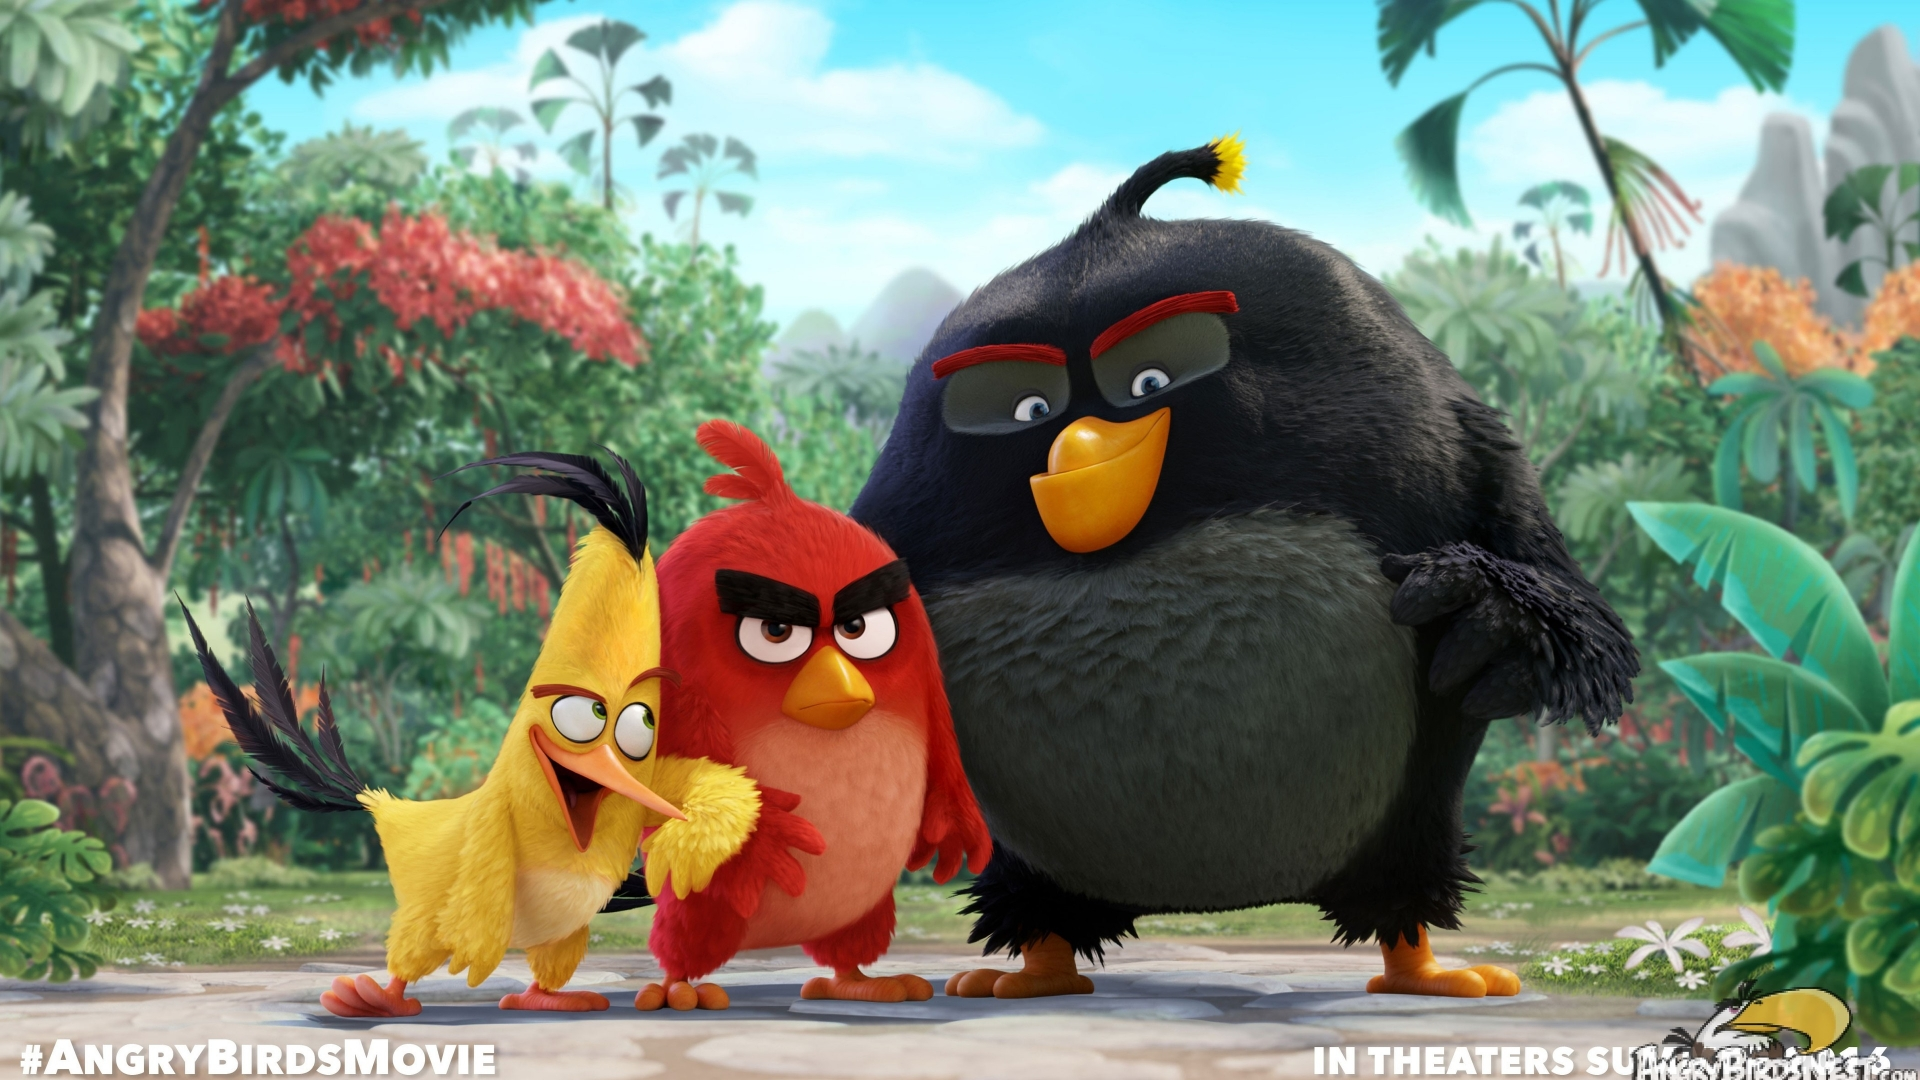 Angry Birds Movie for 1920 x 1080 HDTV 1080p resolution